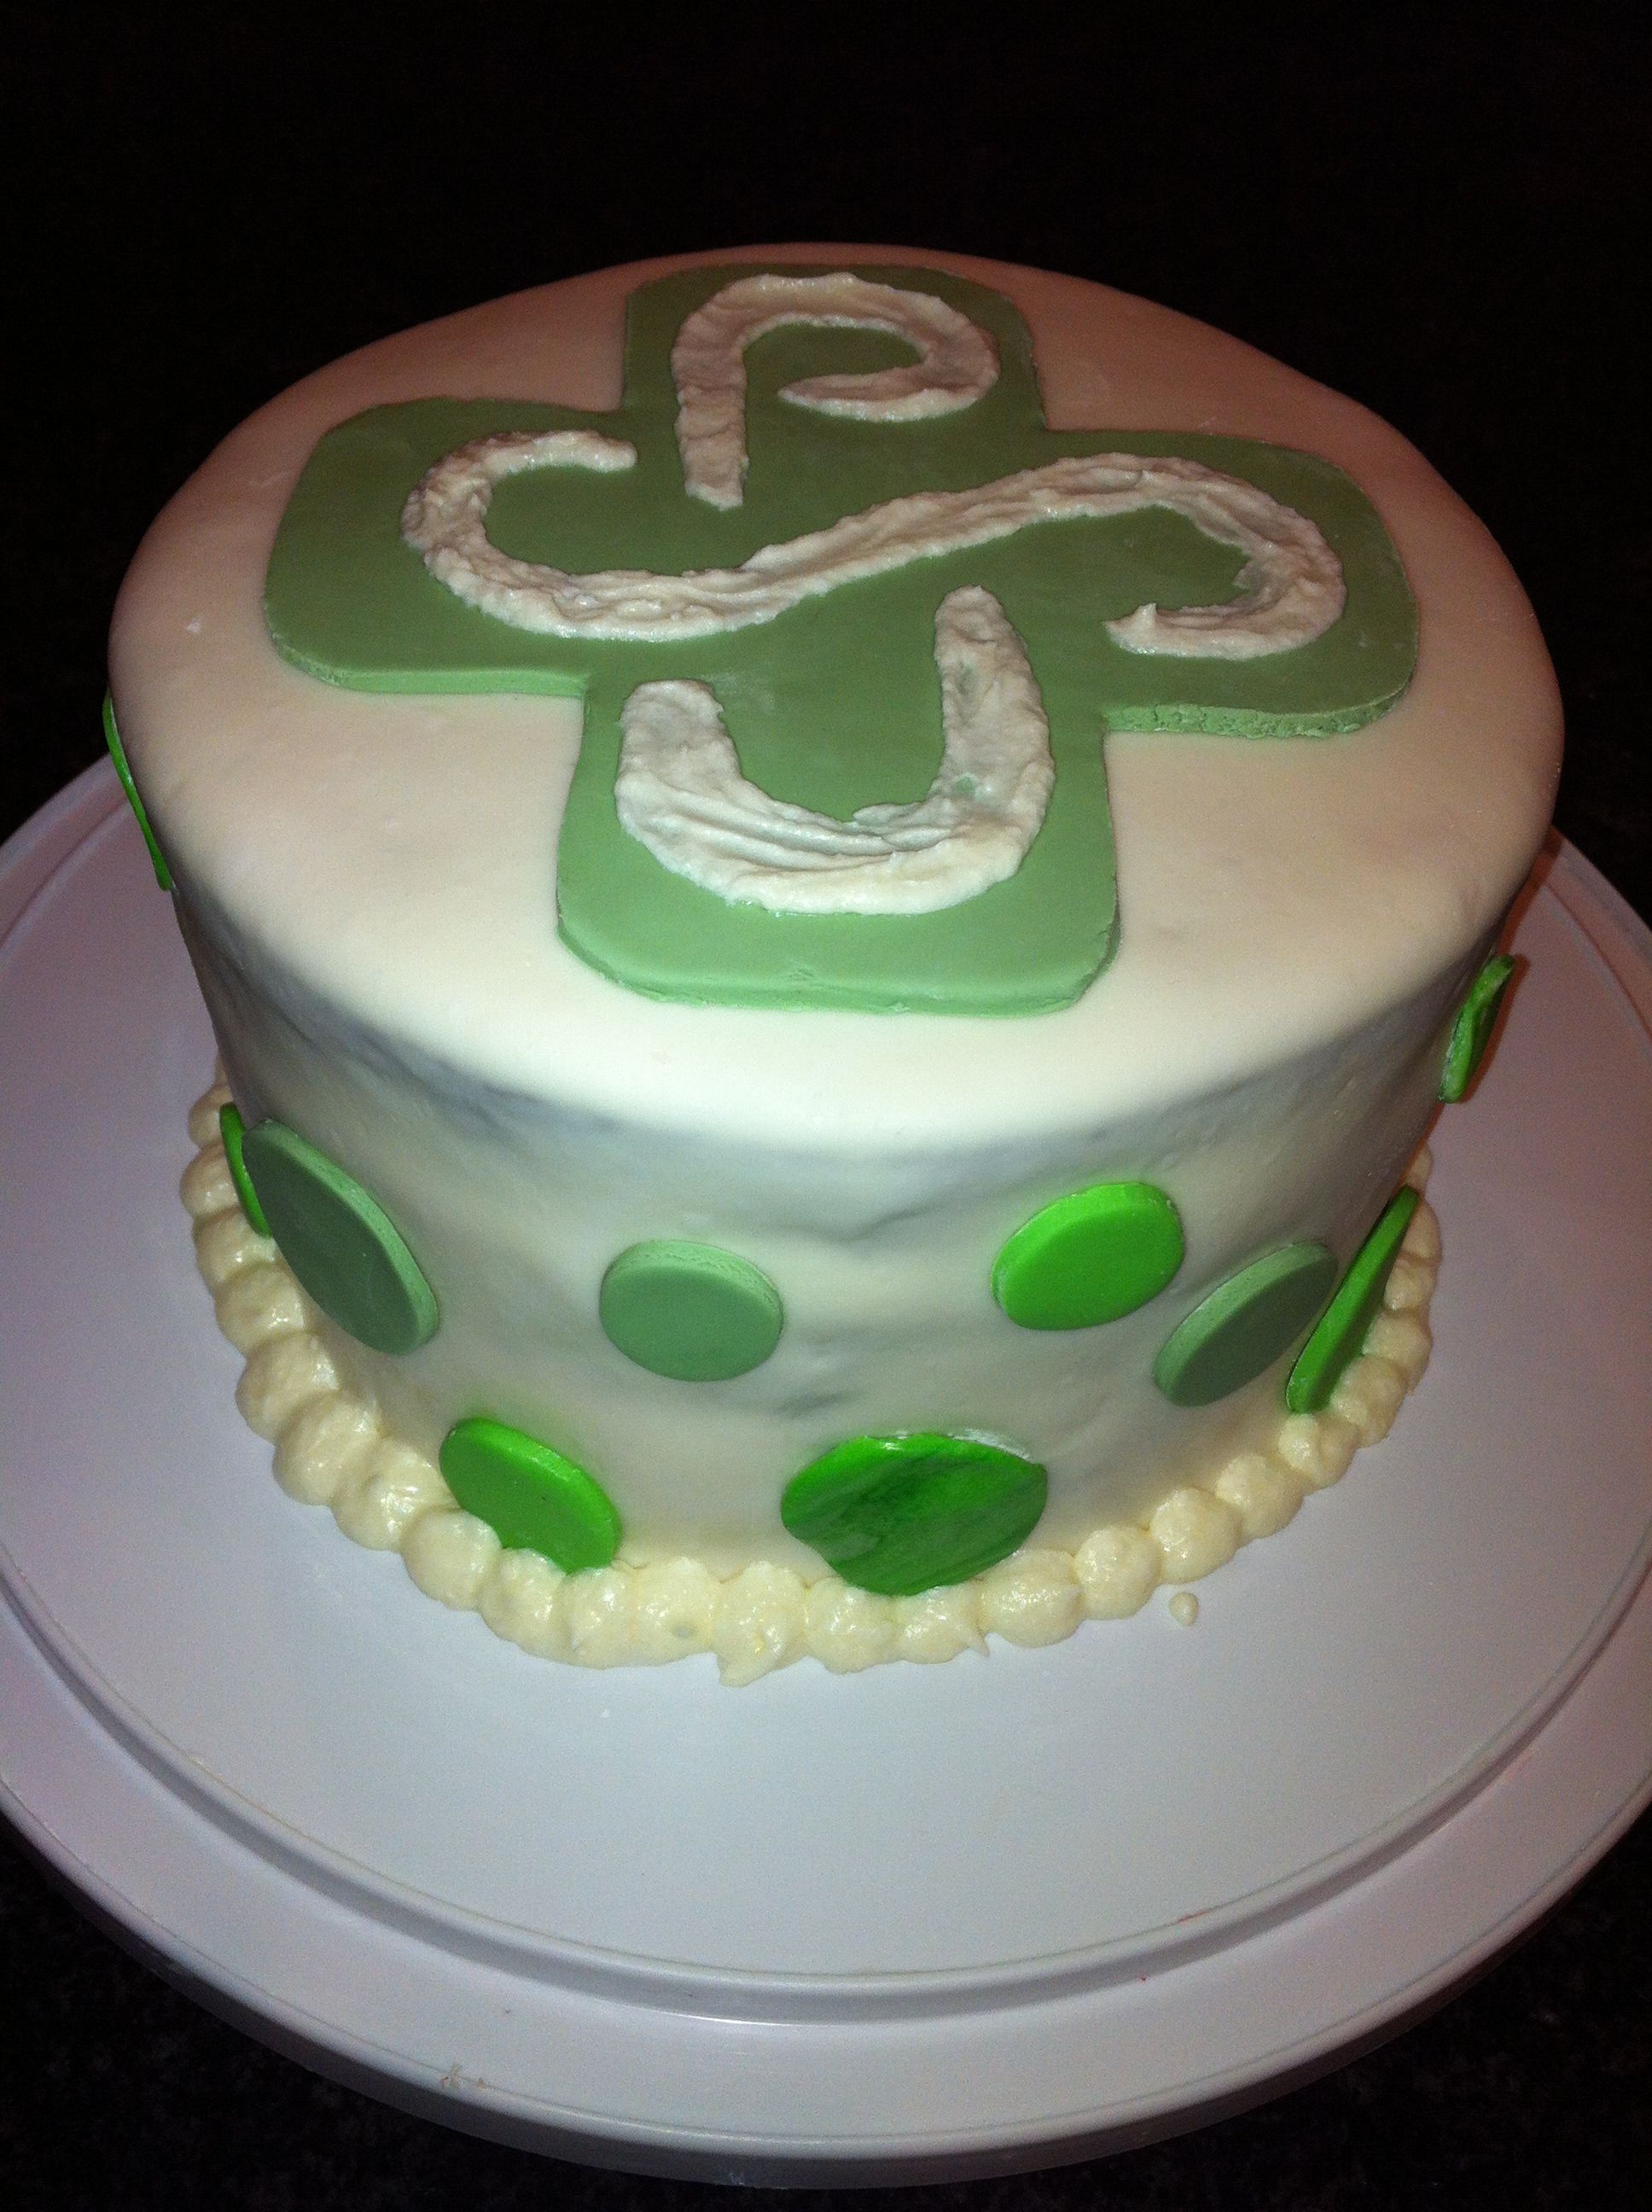 Amazing PSU cake Baby sister inlaws college cake Portland State